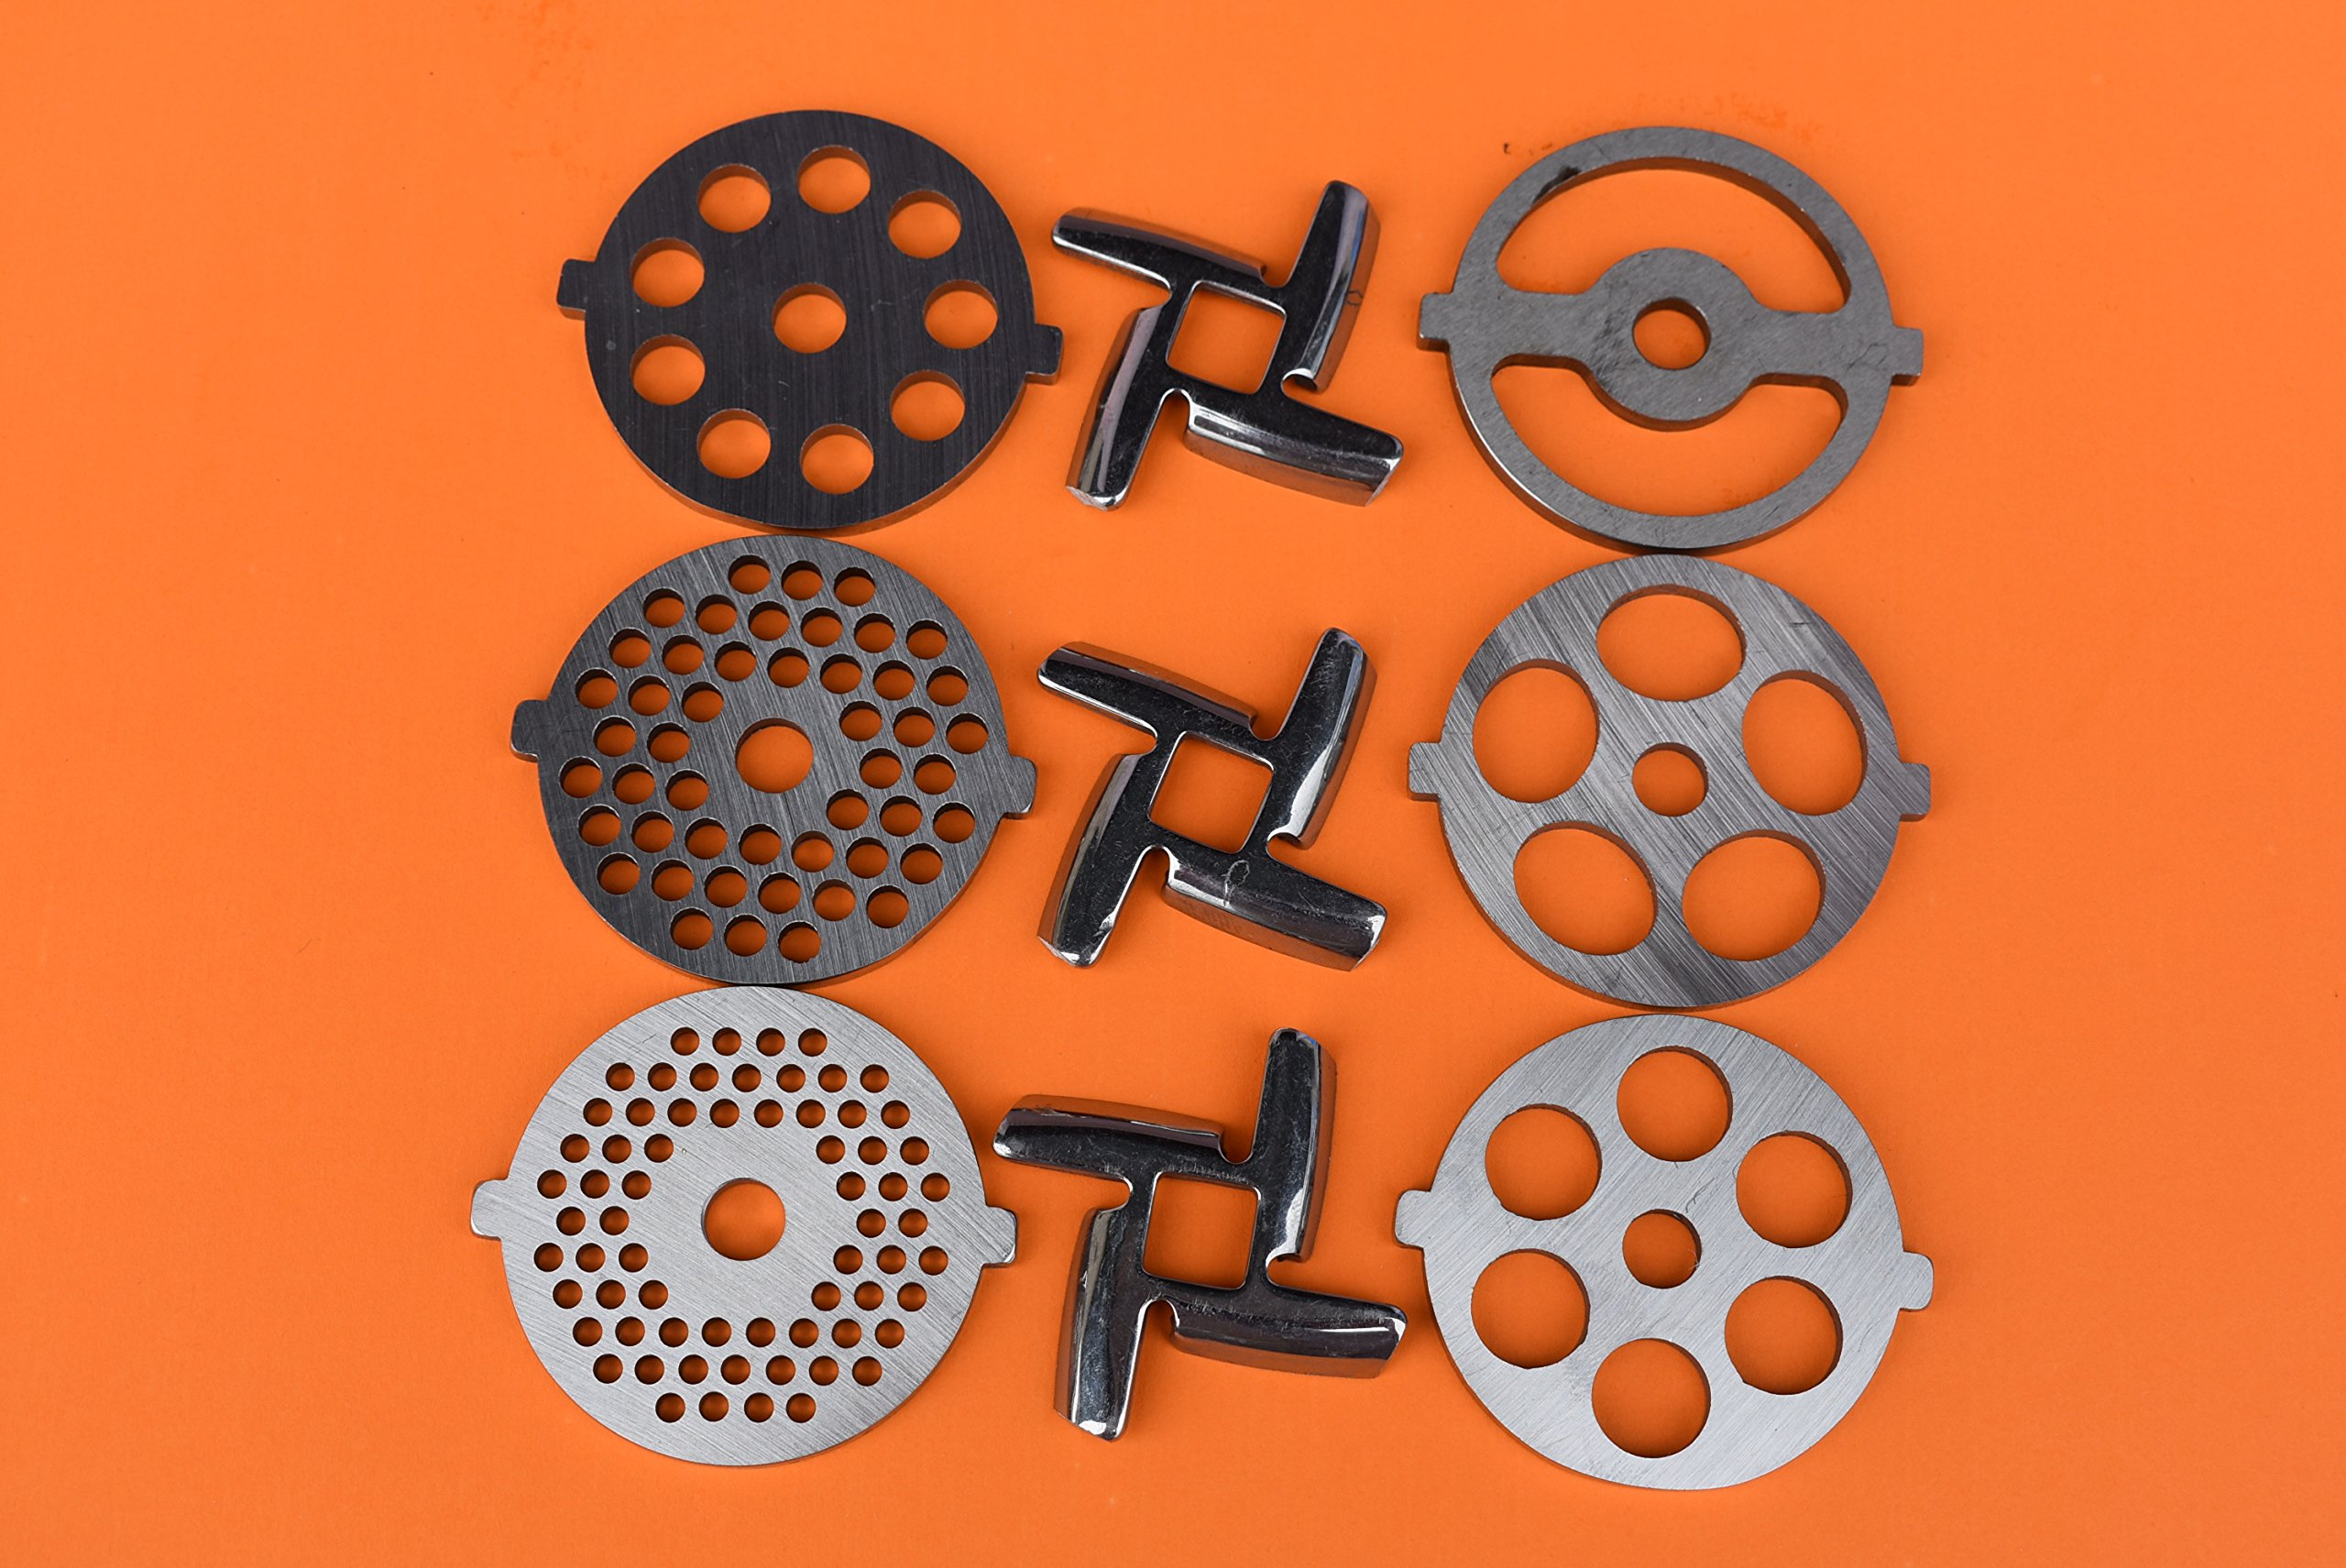 9 pc SET New Size Discs and NEW style Sharp blades for White Plastic Kitchenaid meat grinder food chopper. Custom made to fit the FGA 1 and FGA II